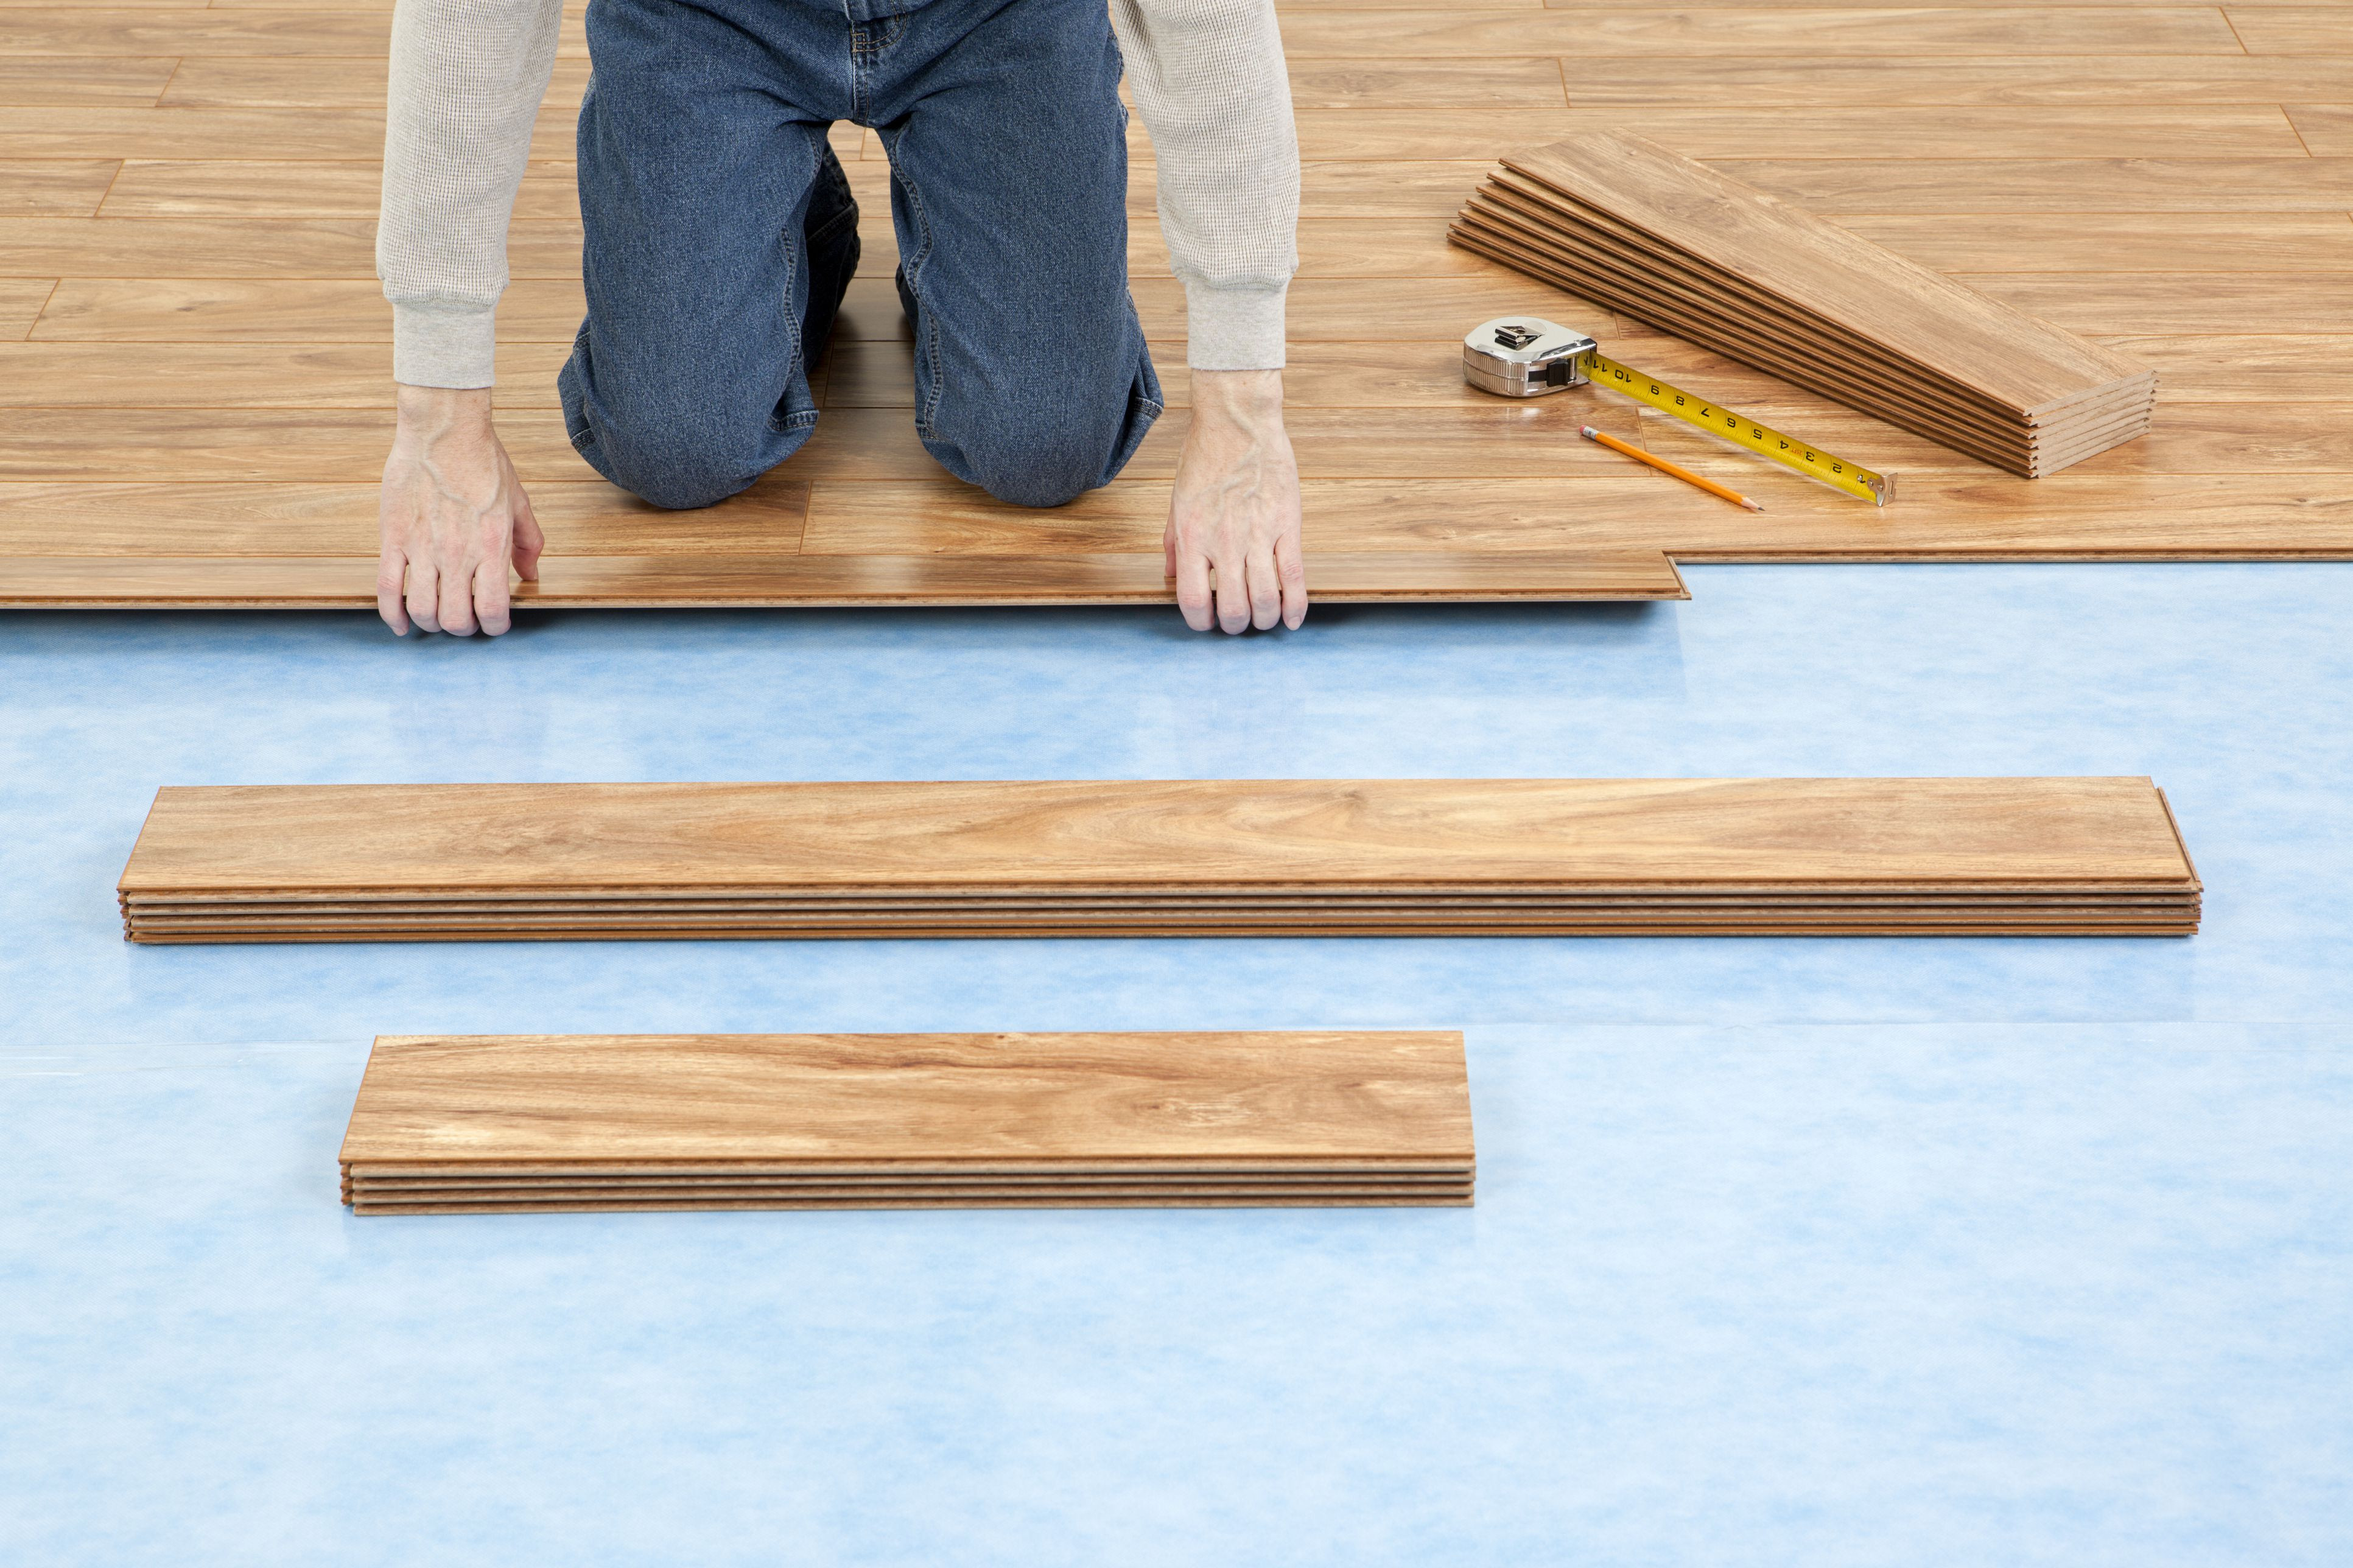 hardwood floor sound barrier of installing laminate flooring with attached underlayment pertaining to new floor installation 155283725 582735c03df78c6f6af8ac80